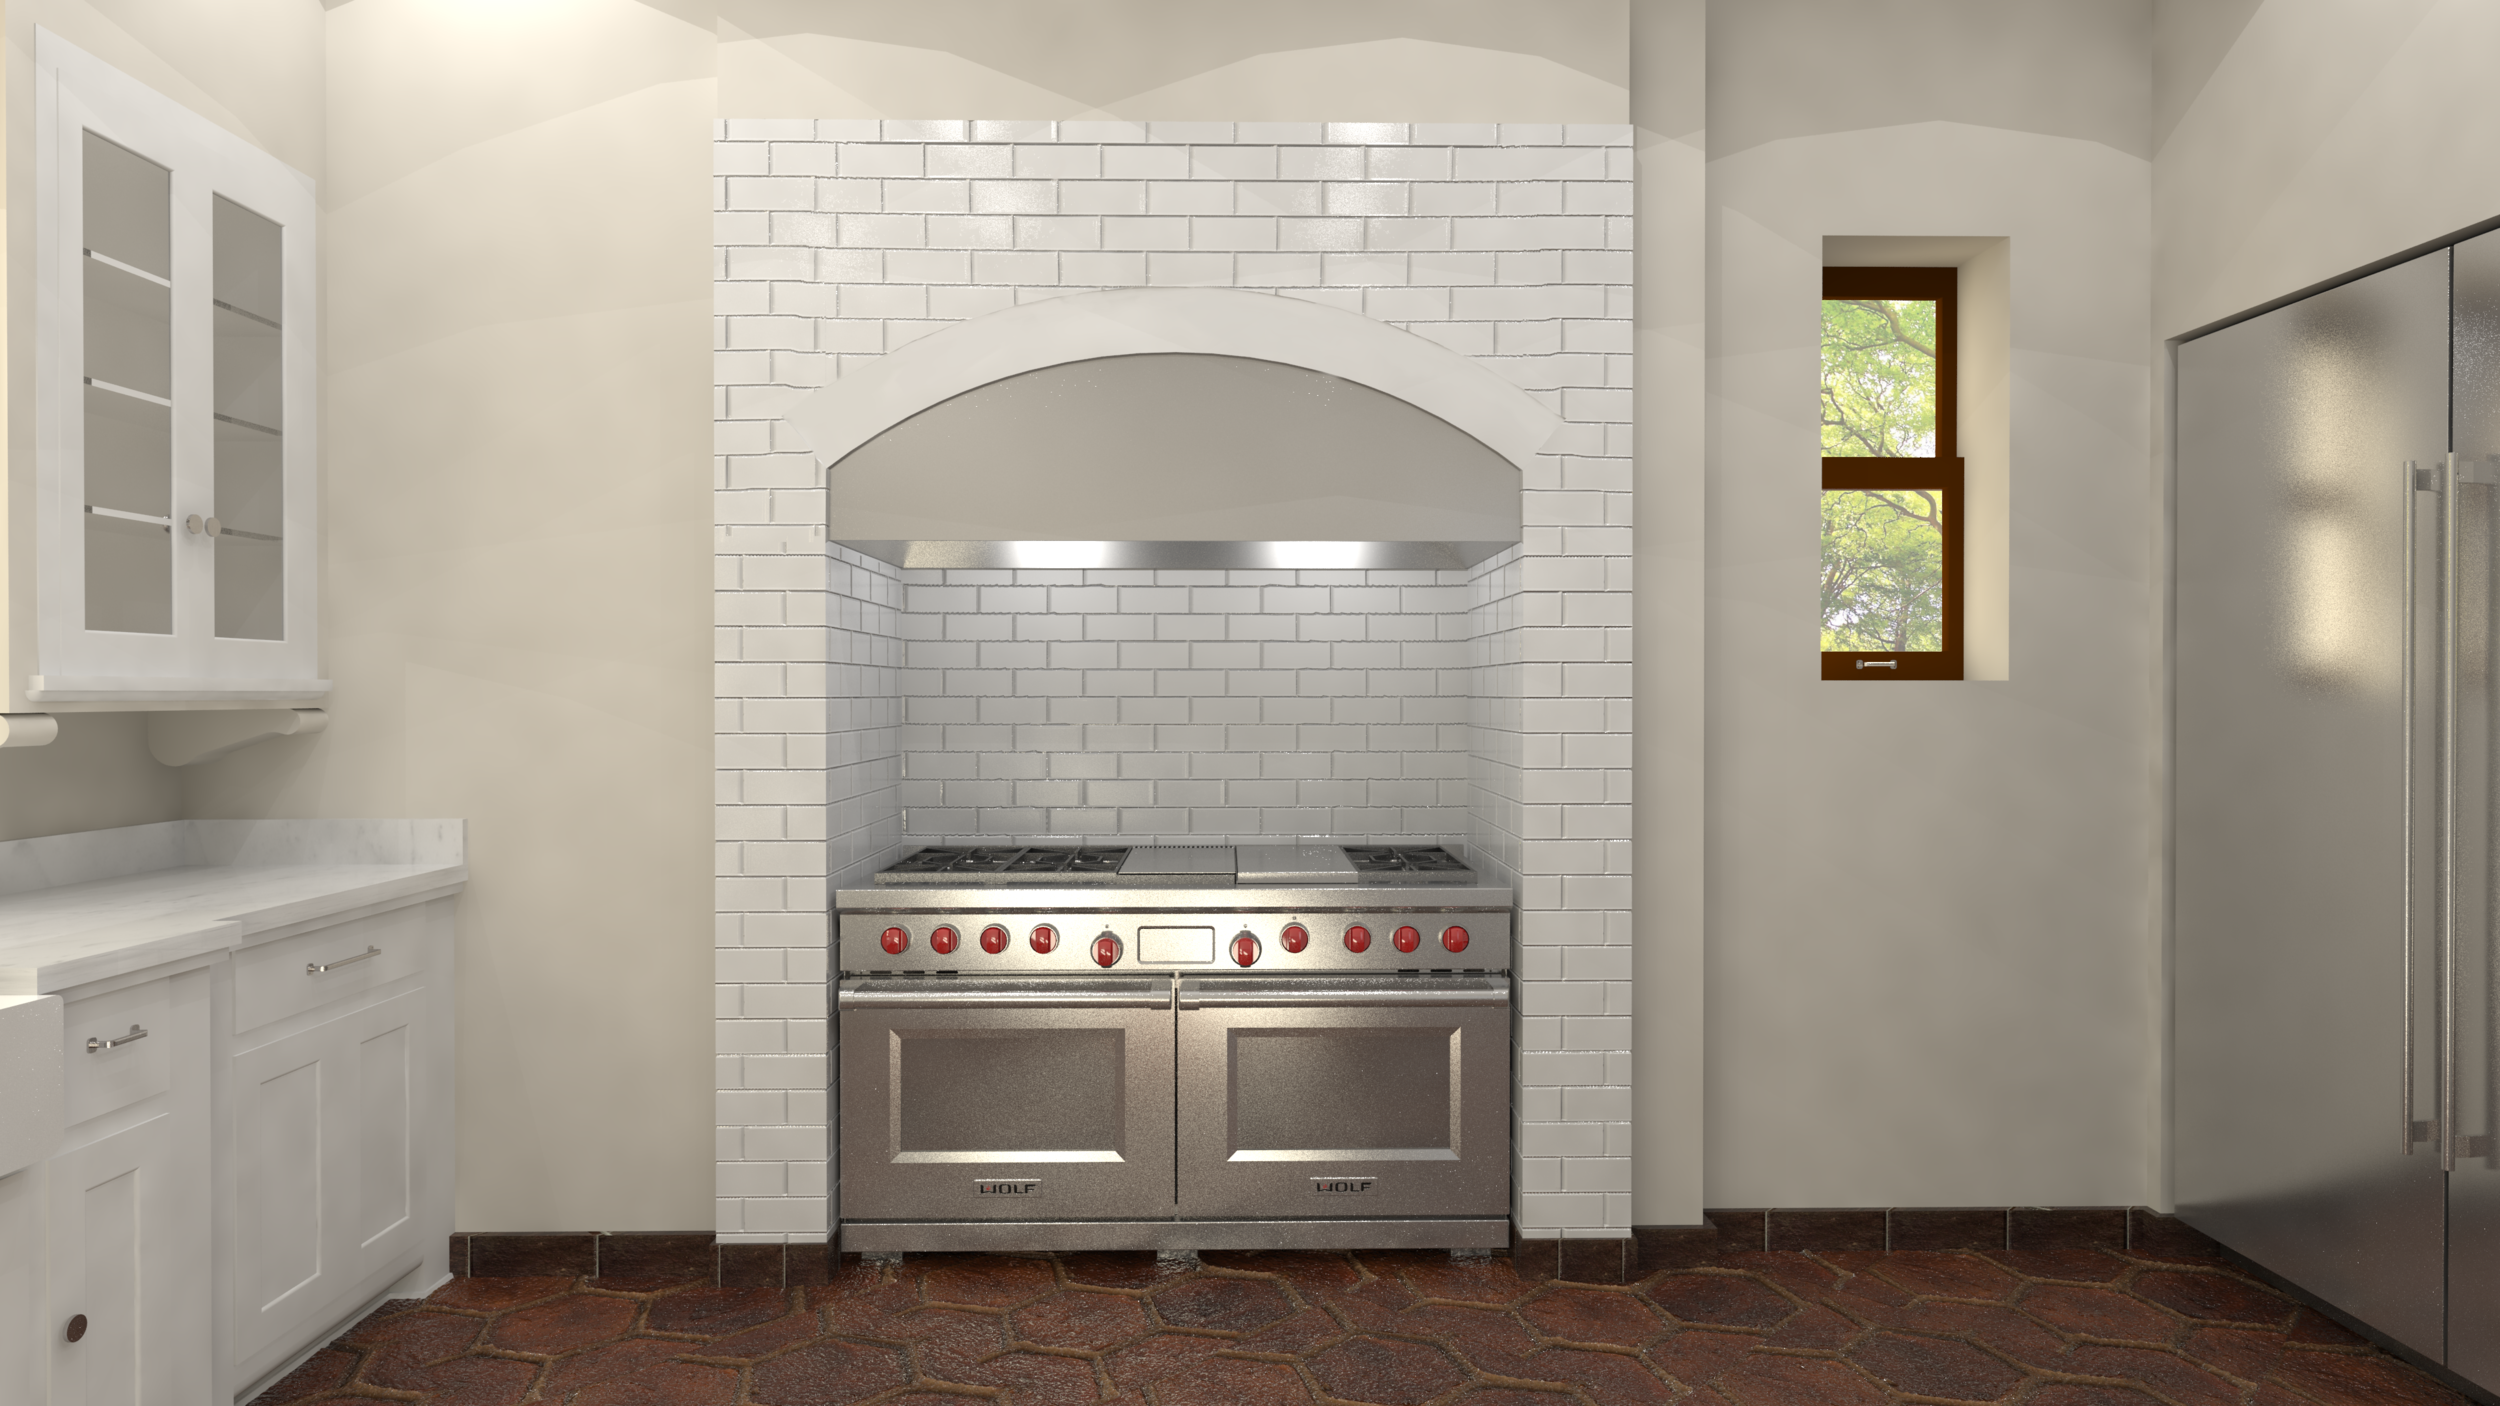 14150_Rhino_Bushnell-Kitchen-NamedView-Perspective kitchen 4.png